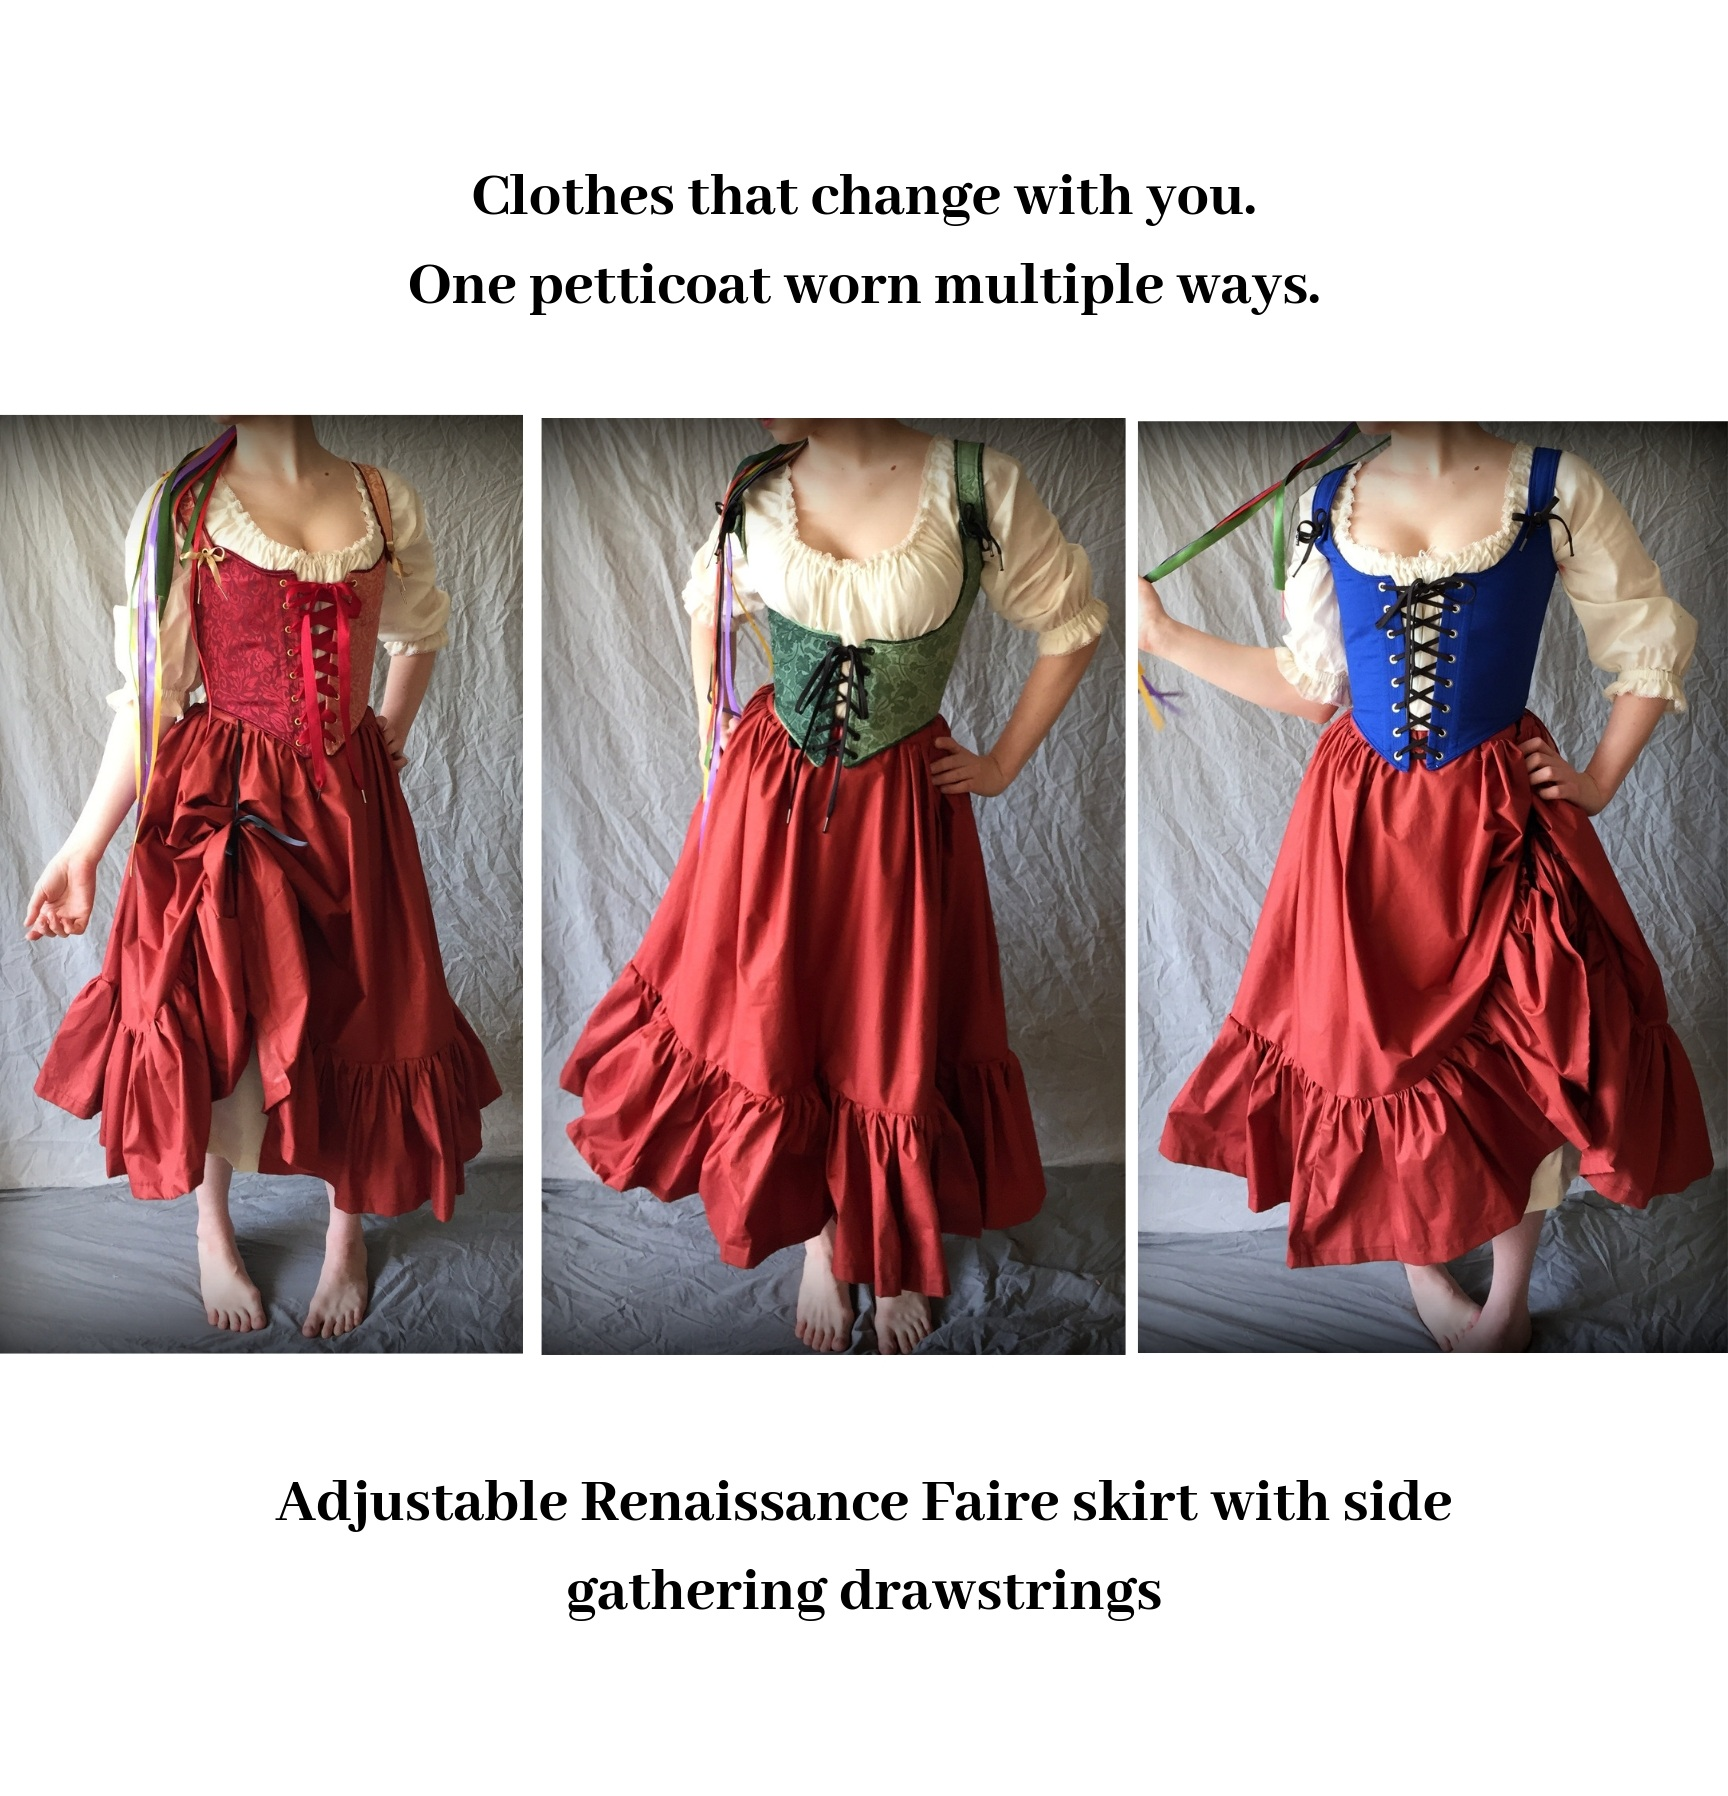 One+petticoat+worn+3+ways.jpg